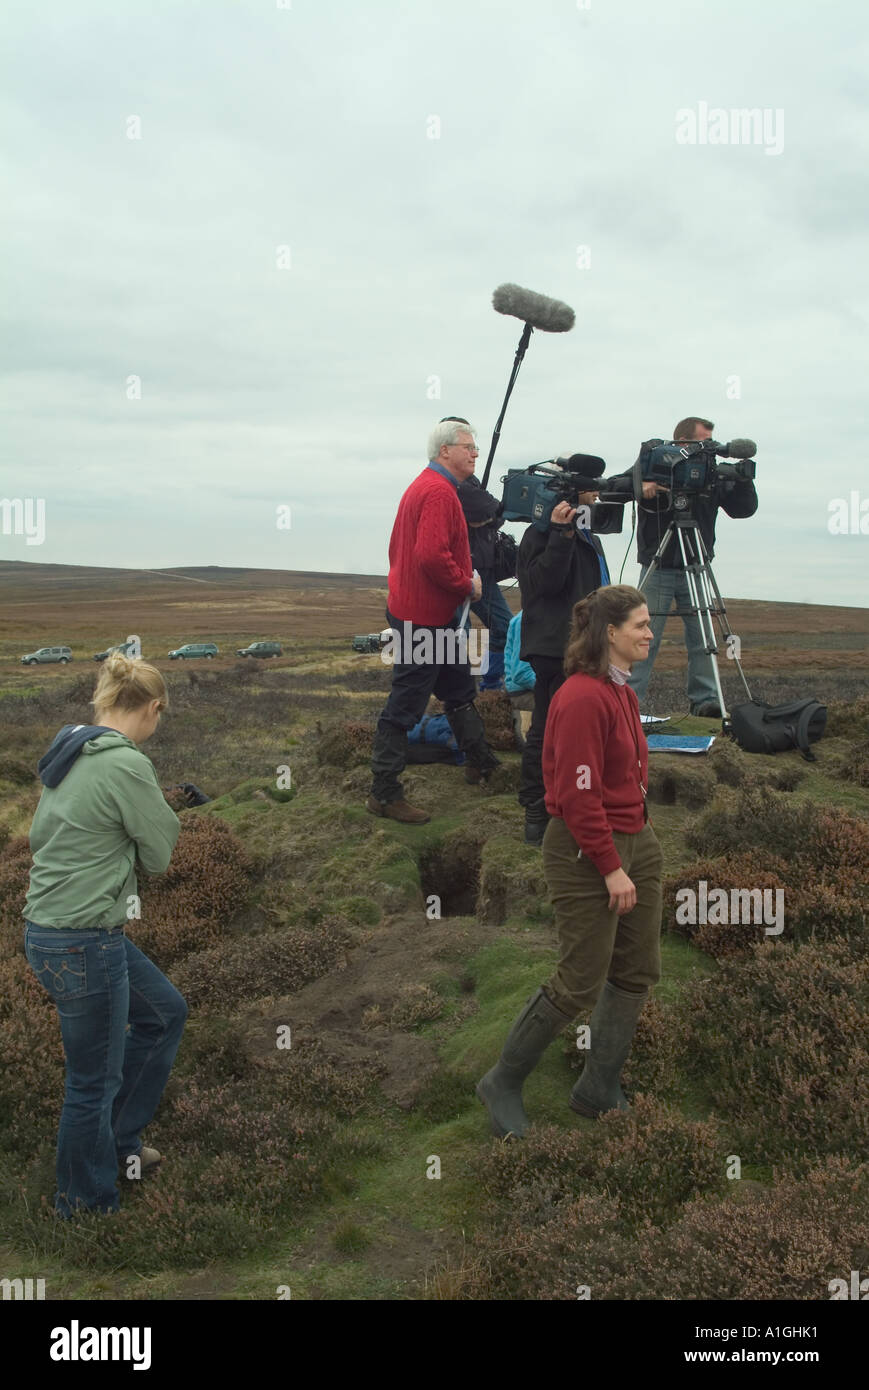 Filming a piece for the British Magazine Program Countryfile on location on the North Yorkshire Moors - Stock Image